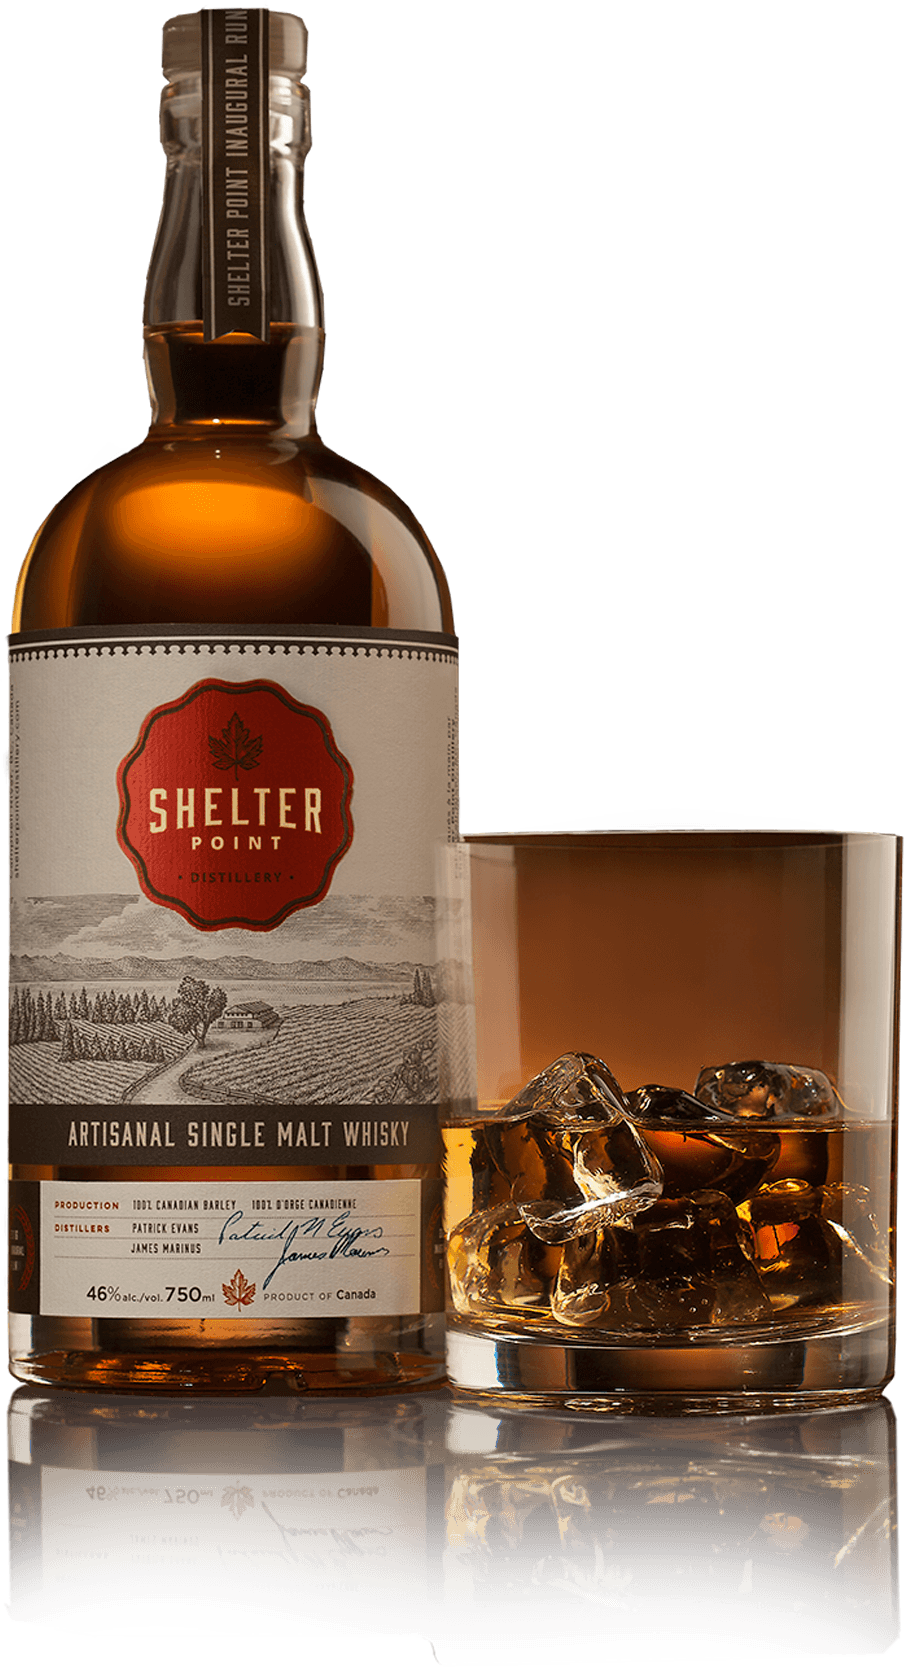 Shelter Point double distilled single malt scotch whisky